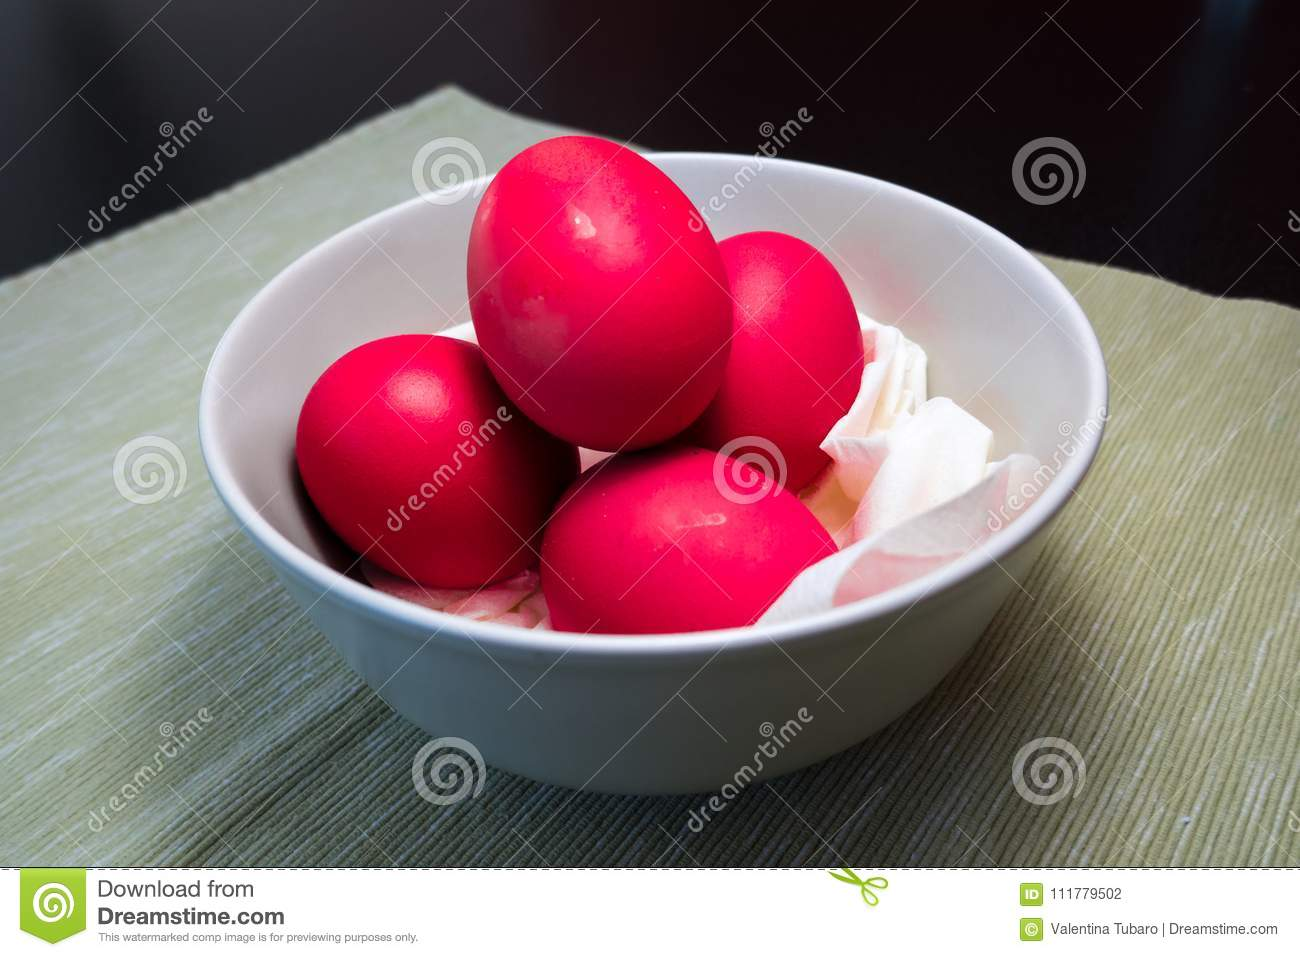 Red hard boiled eggs for the Easter party